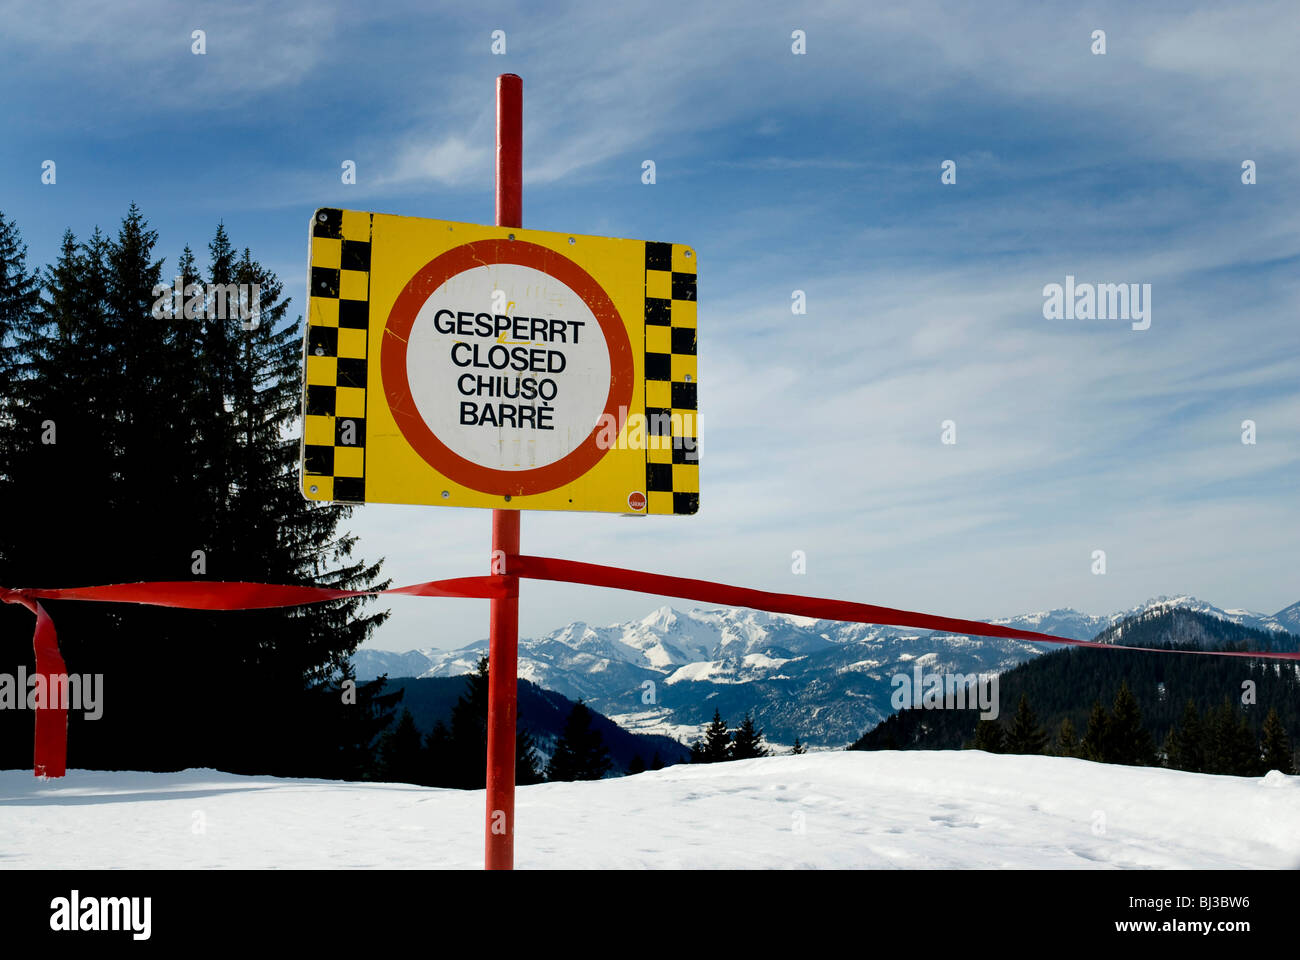 Blocked-off skislope, Winkelmoosalm, Bavaria, Germany, Europe Stock Photo